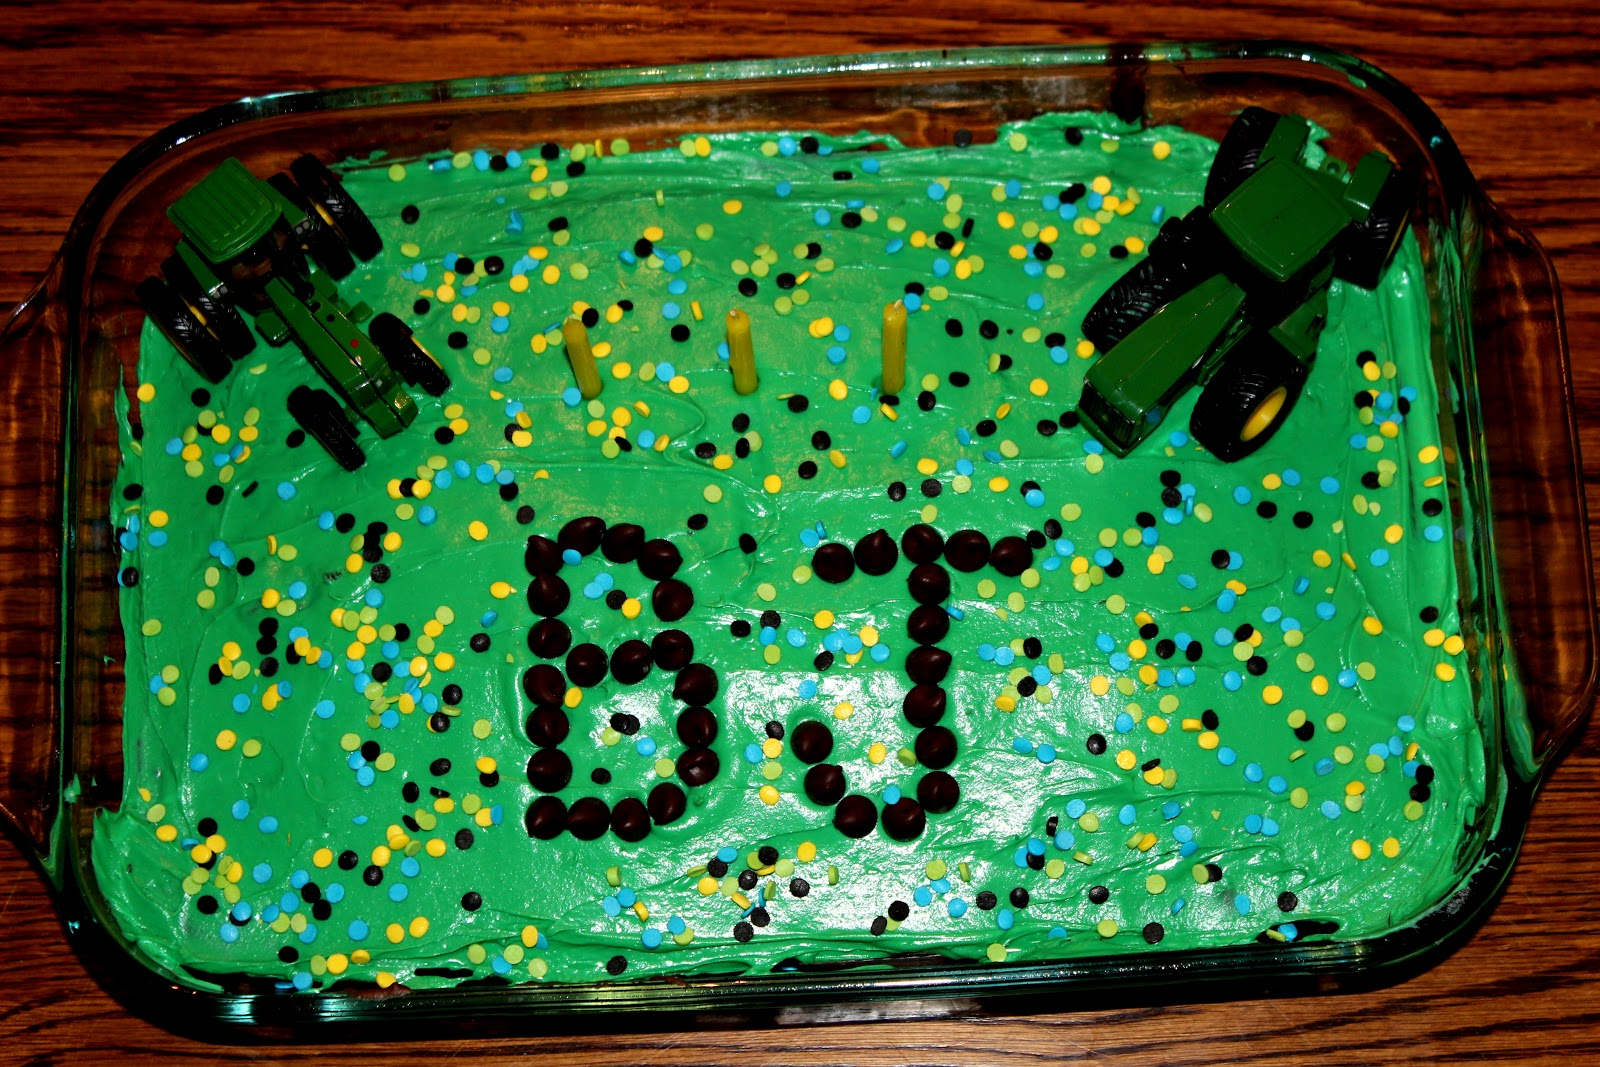 Bjs Cakes Birthday Cake Ideas And Designs